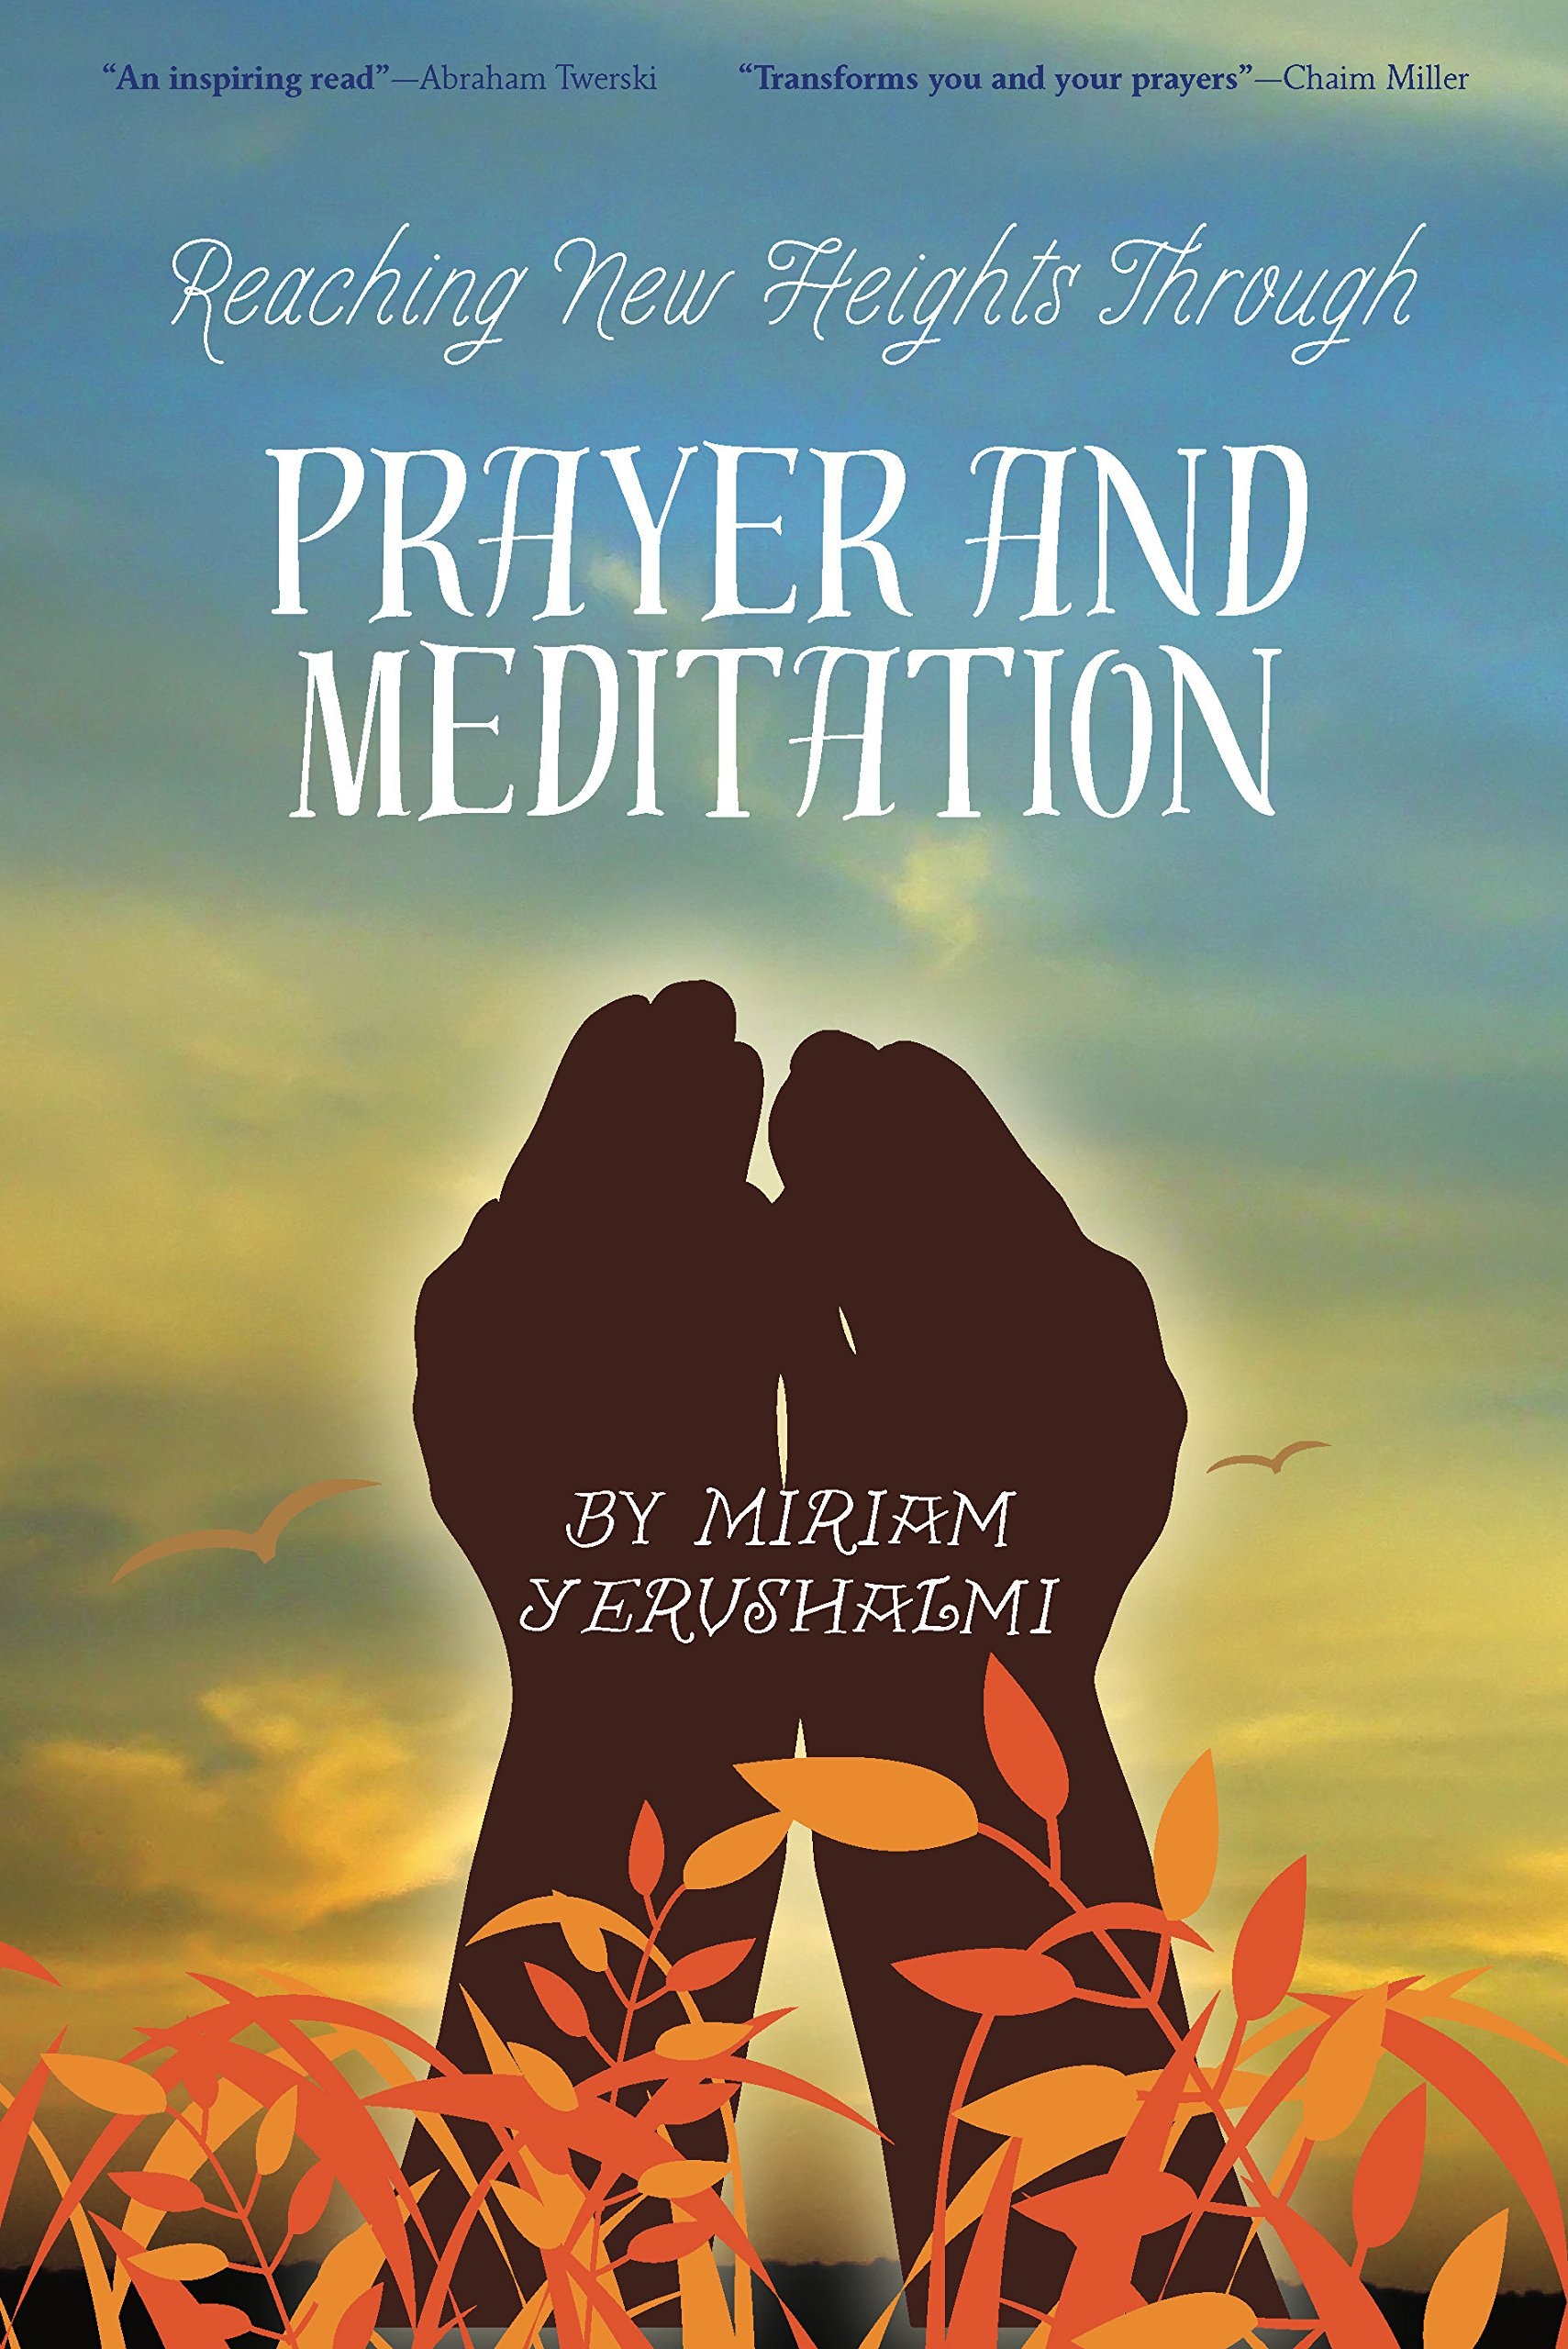 Reaching New Heights Through Prayer and Meditation